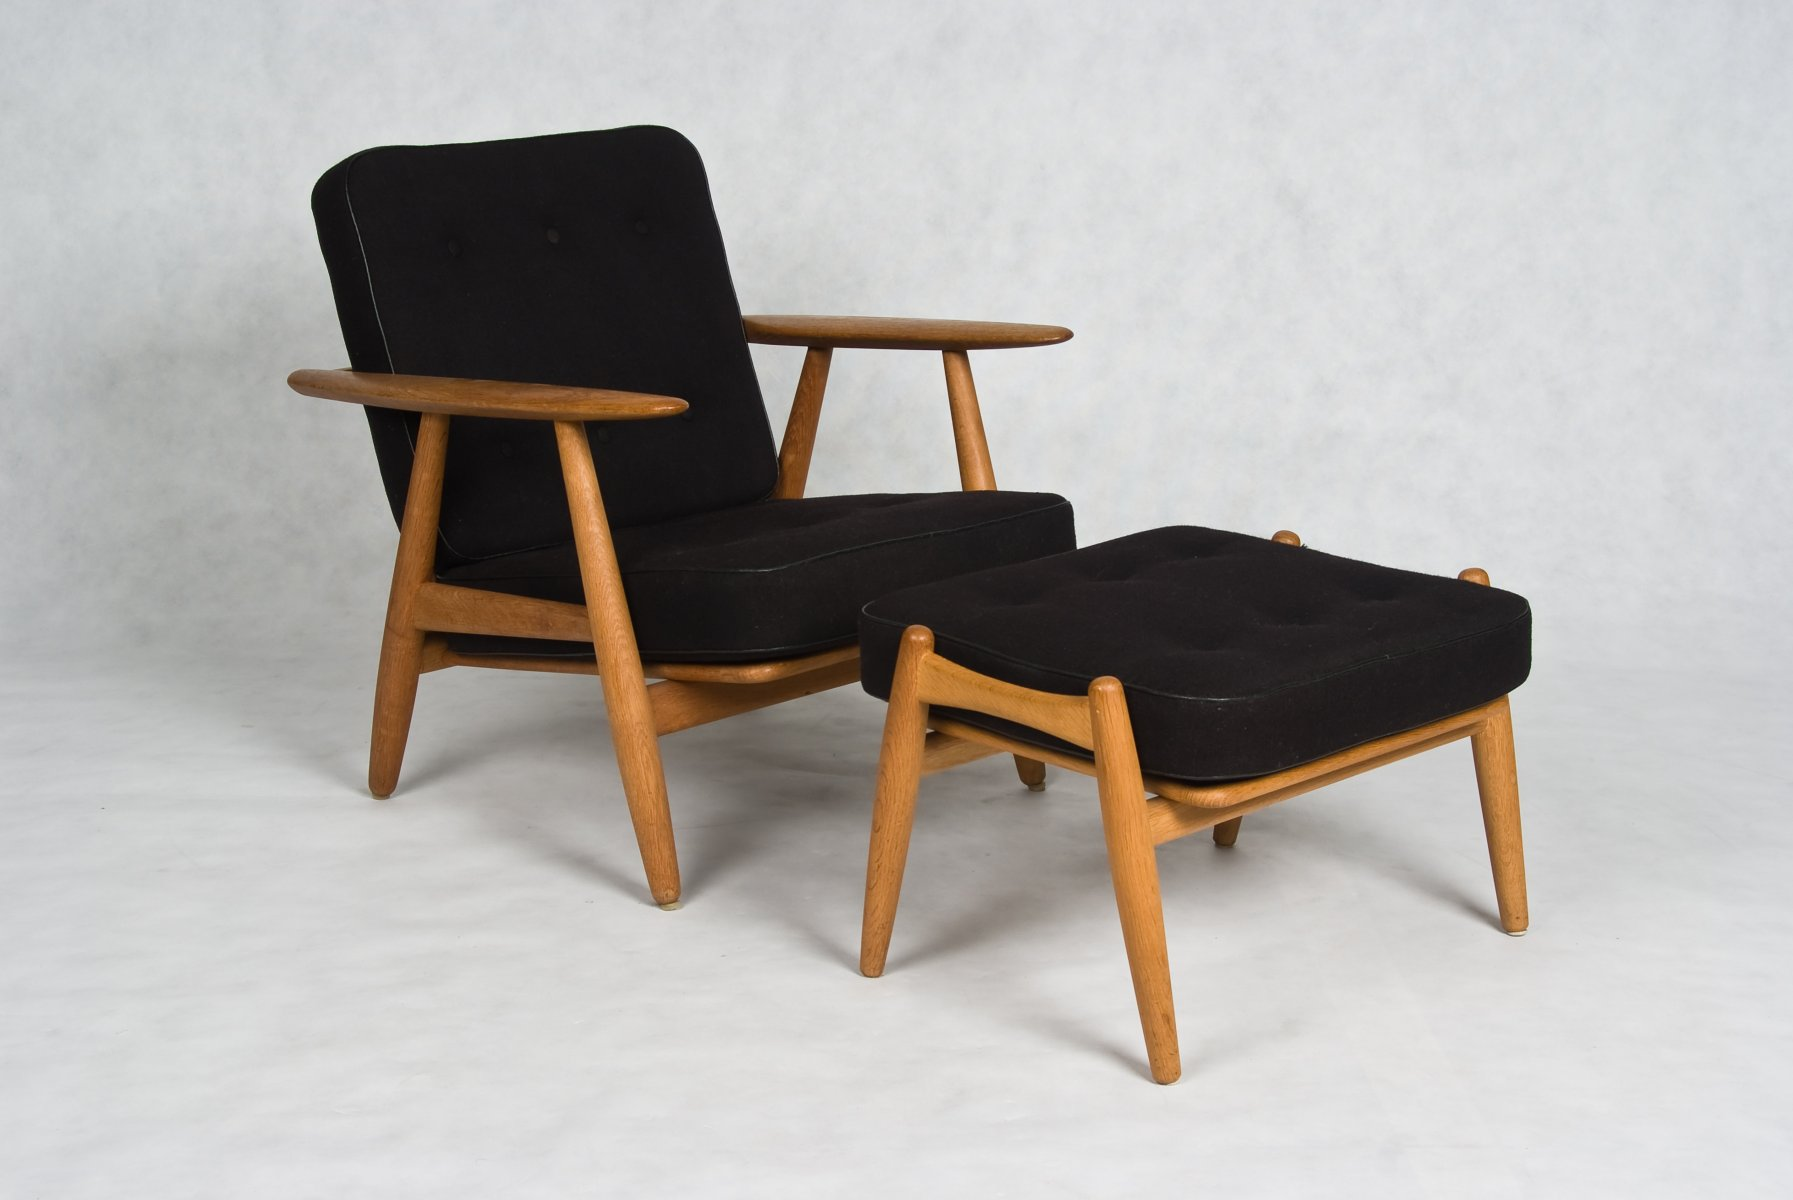 Hans Wegner Cigar Oak chair with stool Model GE 240 designed 1955